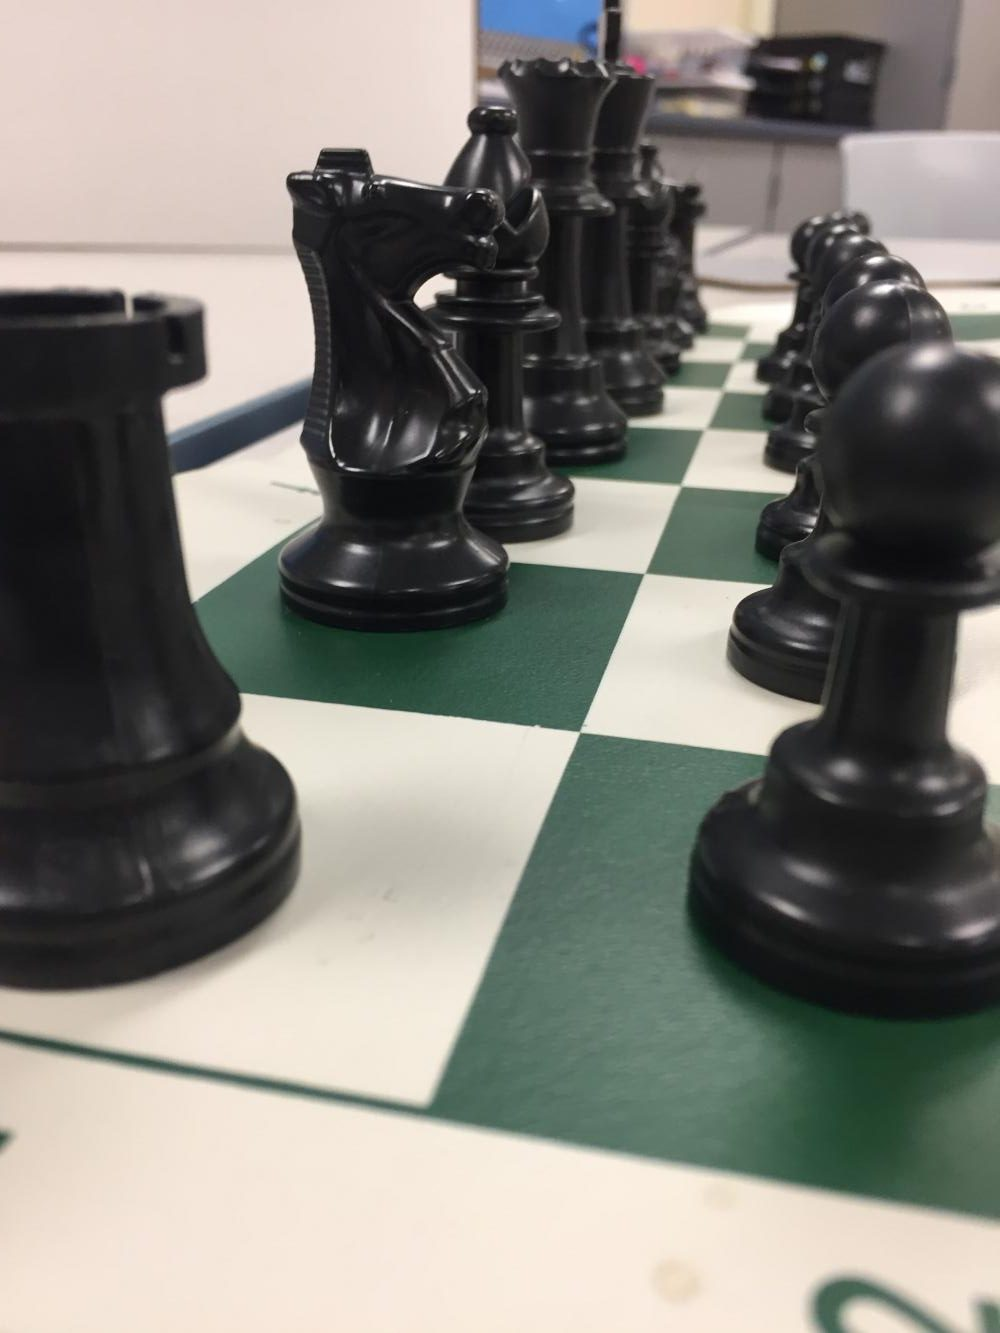 Start of a new game with  new strategies, new competition, new opportunities to win at chess club.